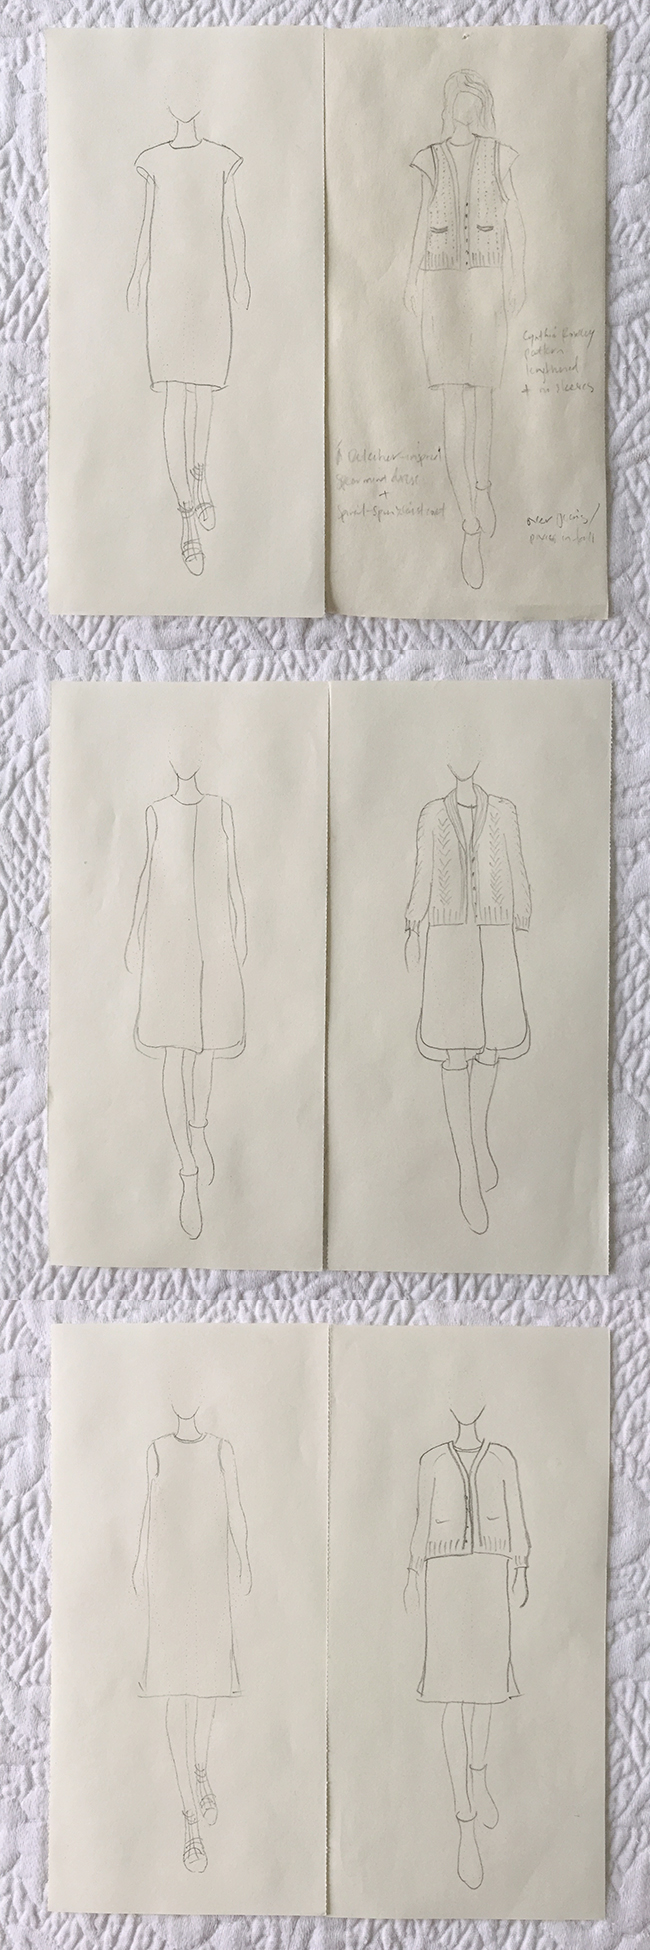 Summer silhouette 1: Dresses with sweaters